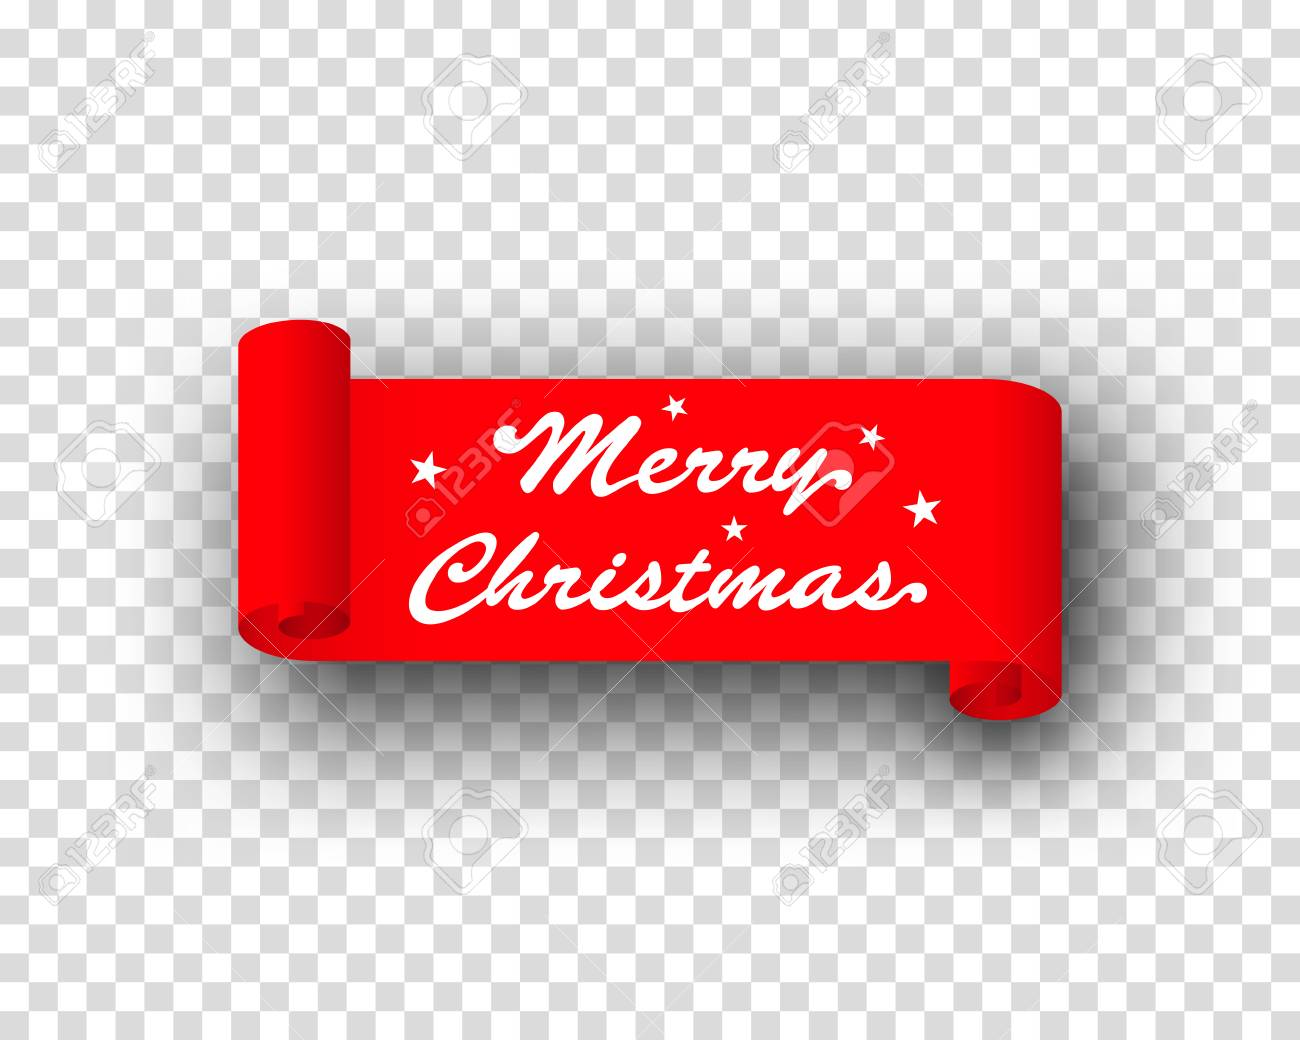 merry christmas logo on red ribbon transparent royalty free cliparts vectors and stock illustration image 70623993 merry christmas logo on red ribbon transparent